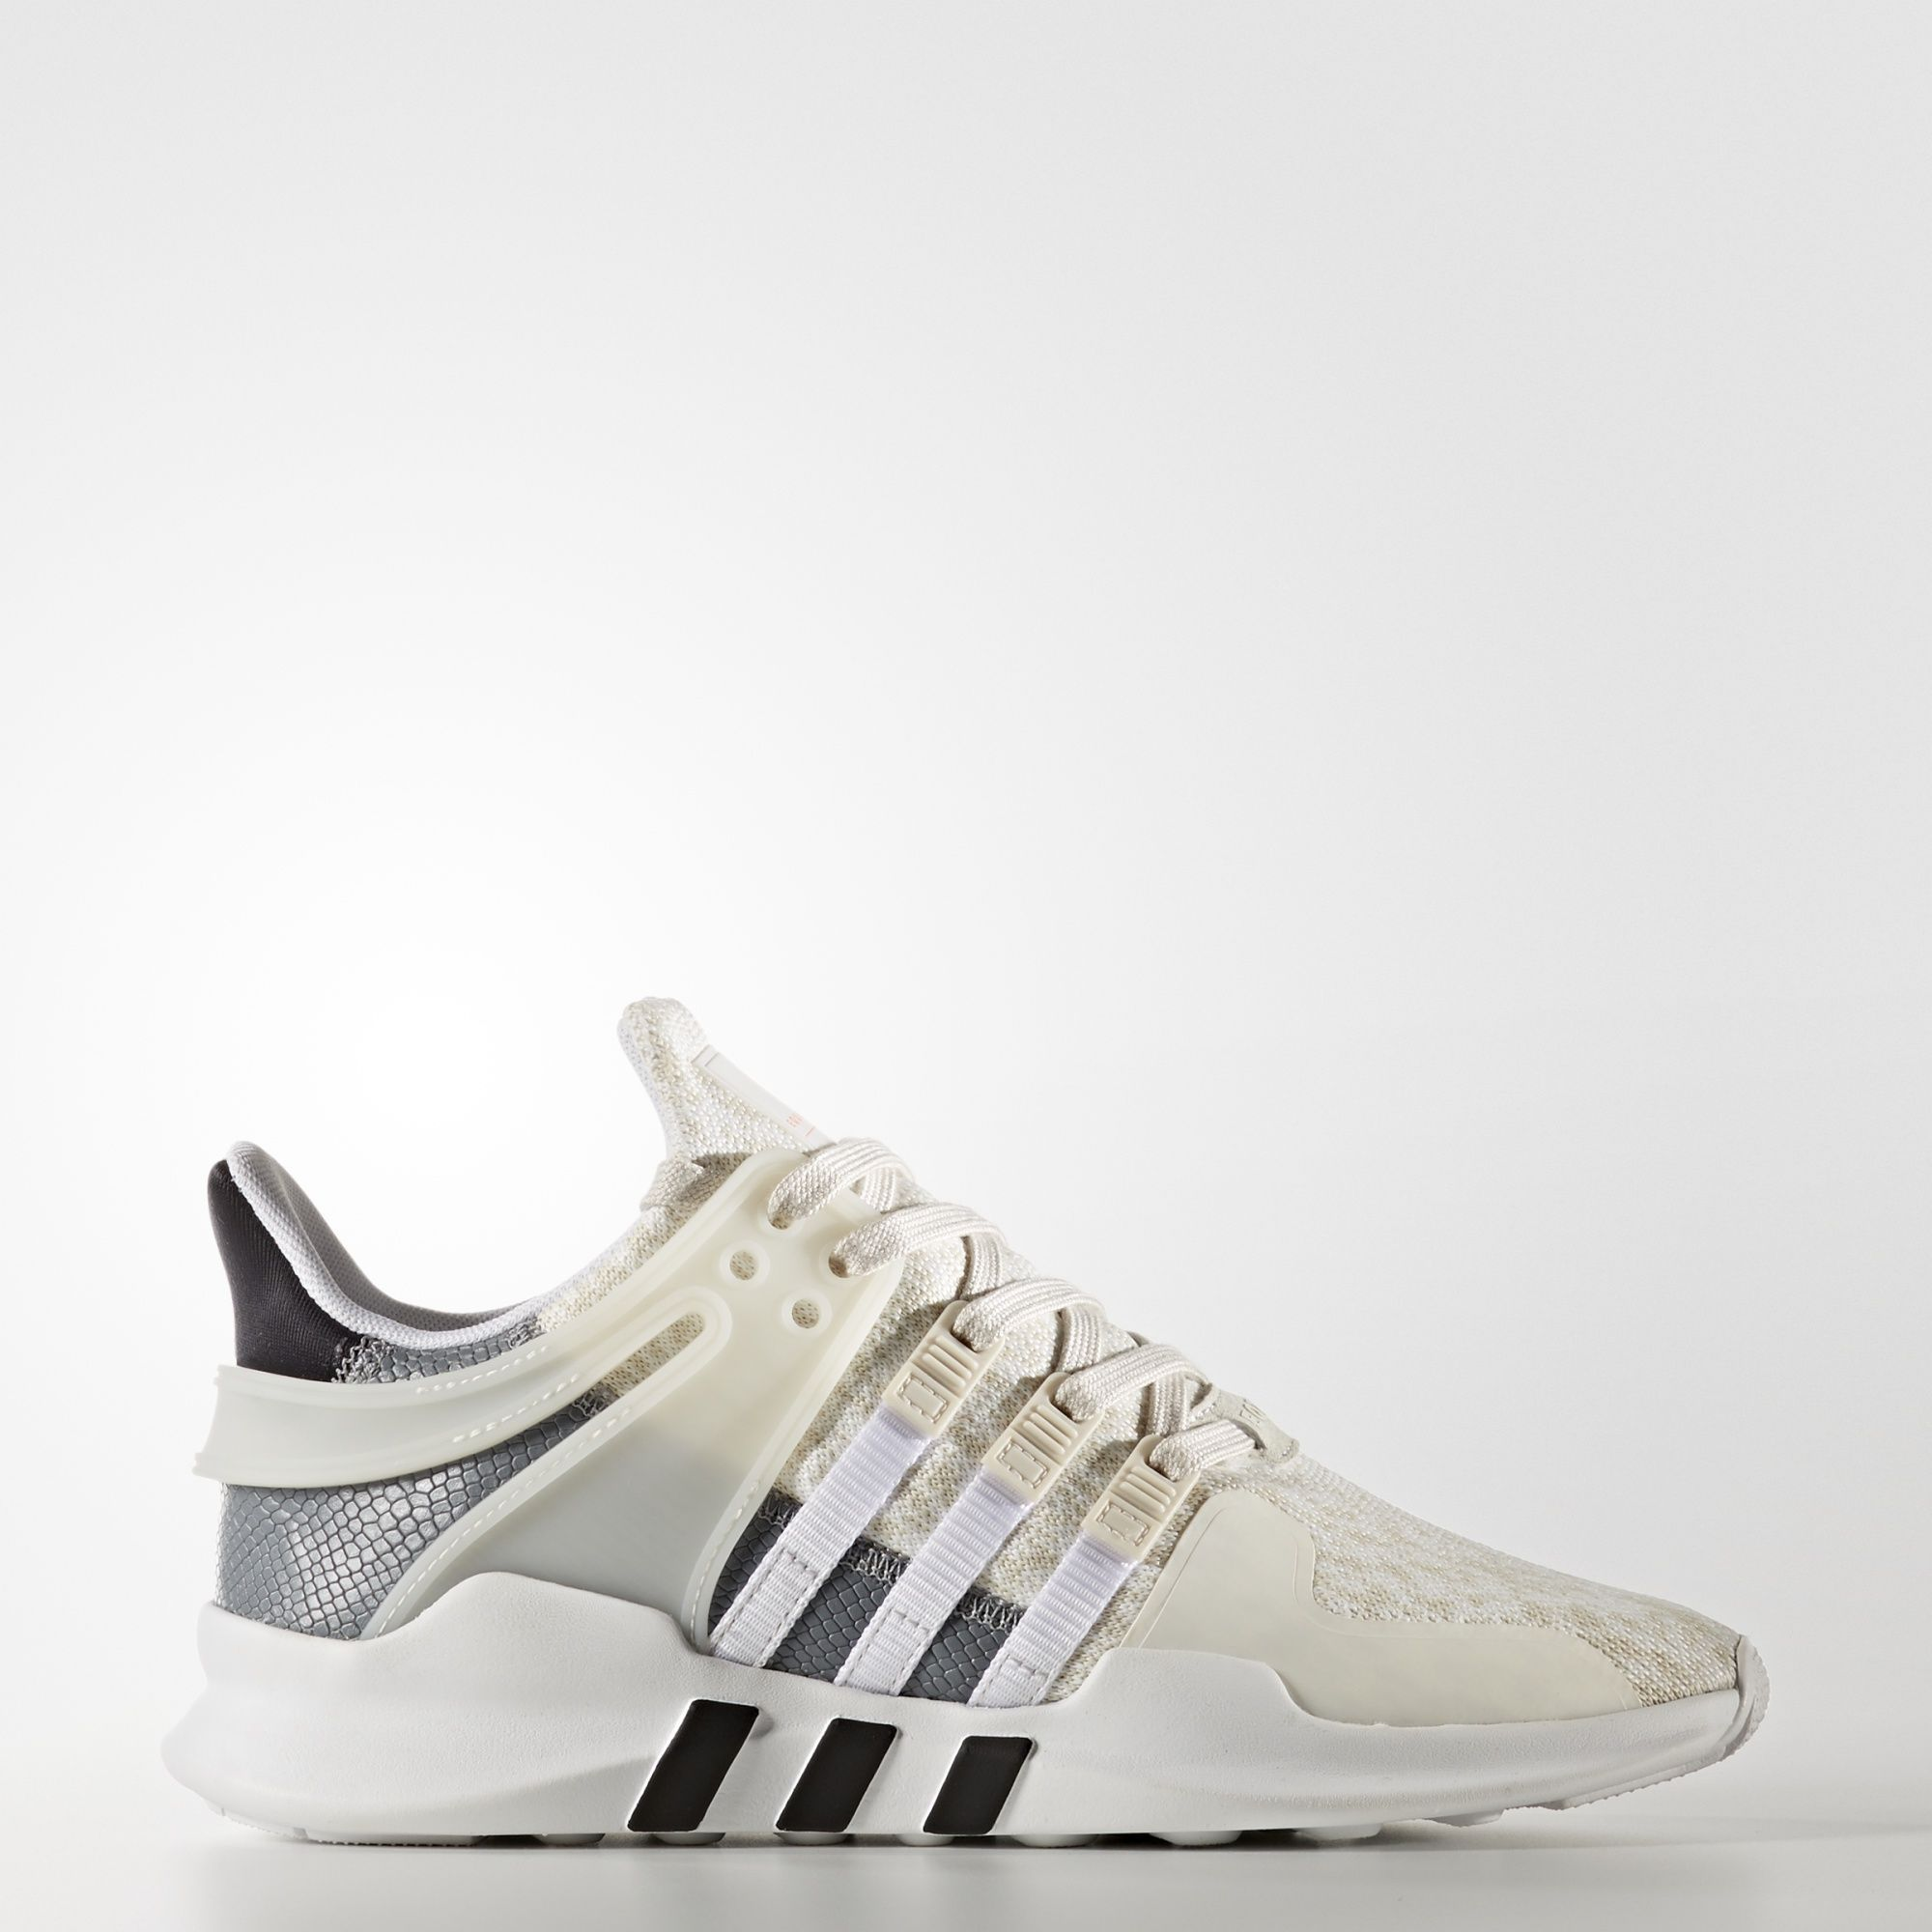 EQT Shoes | adidas US